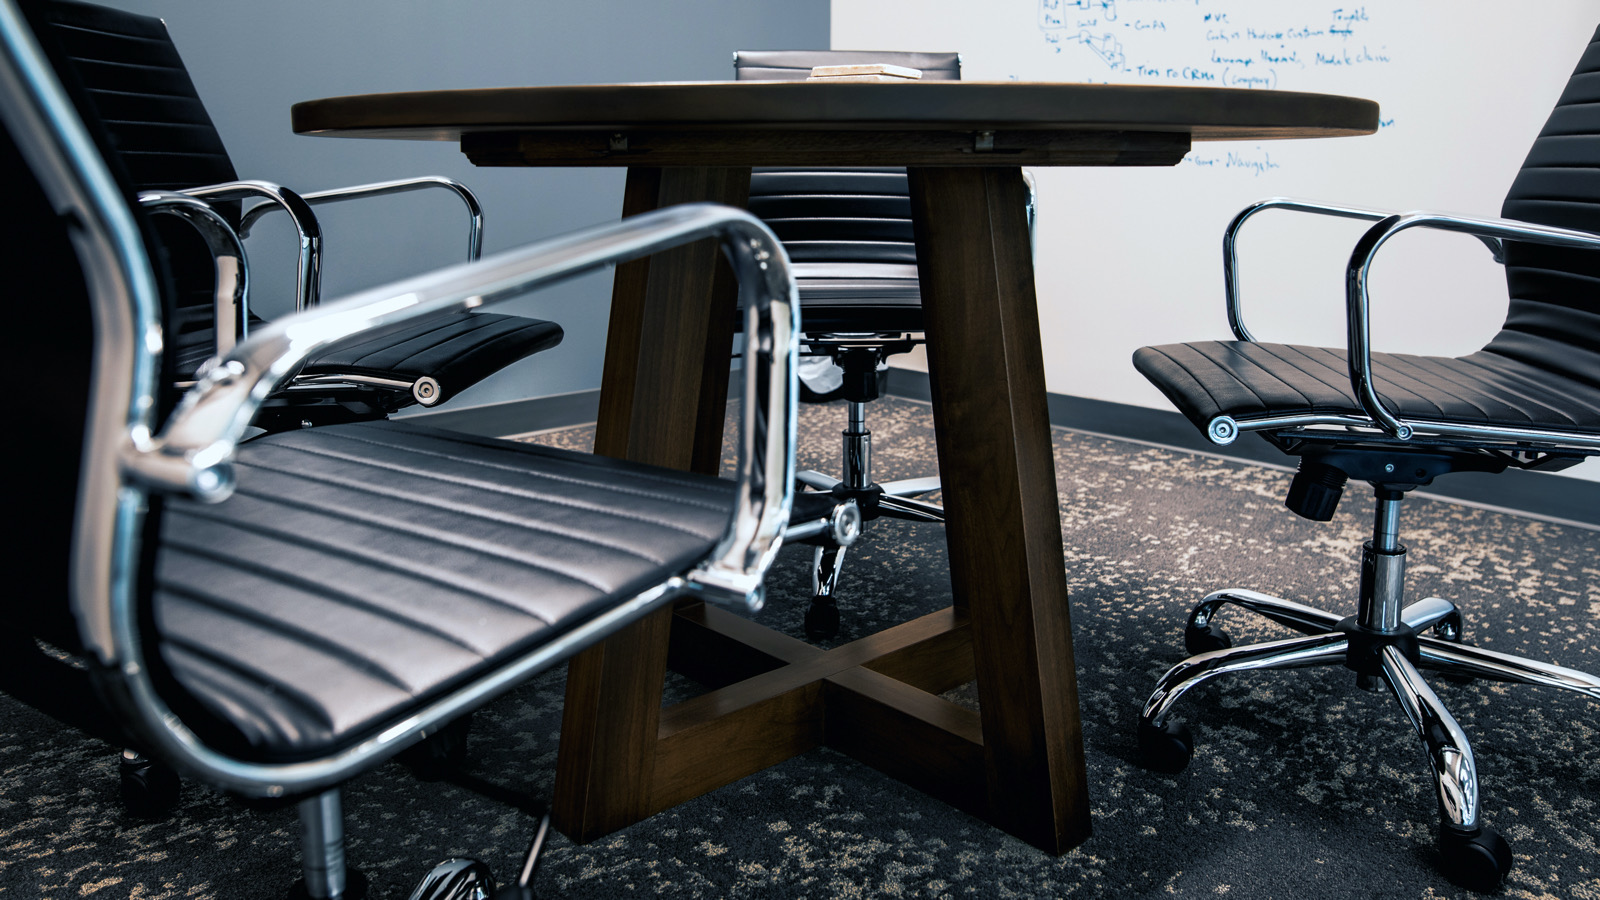 The Ward Round Table: Company Office Furniture